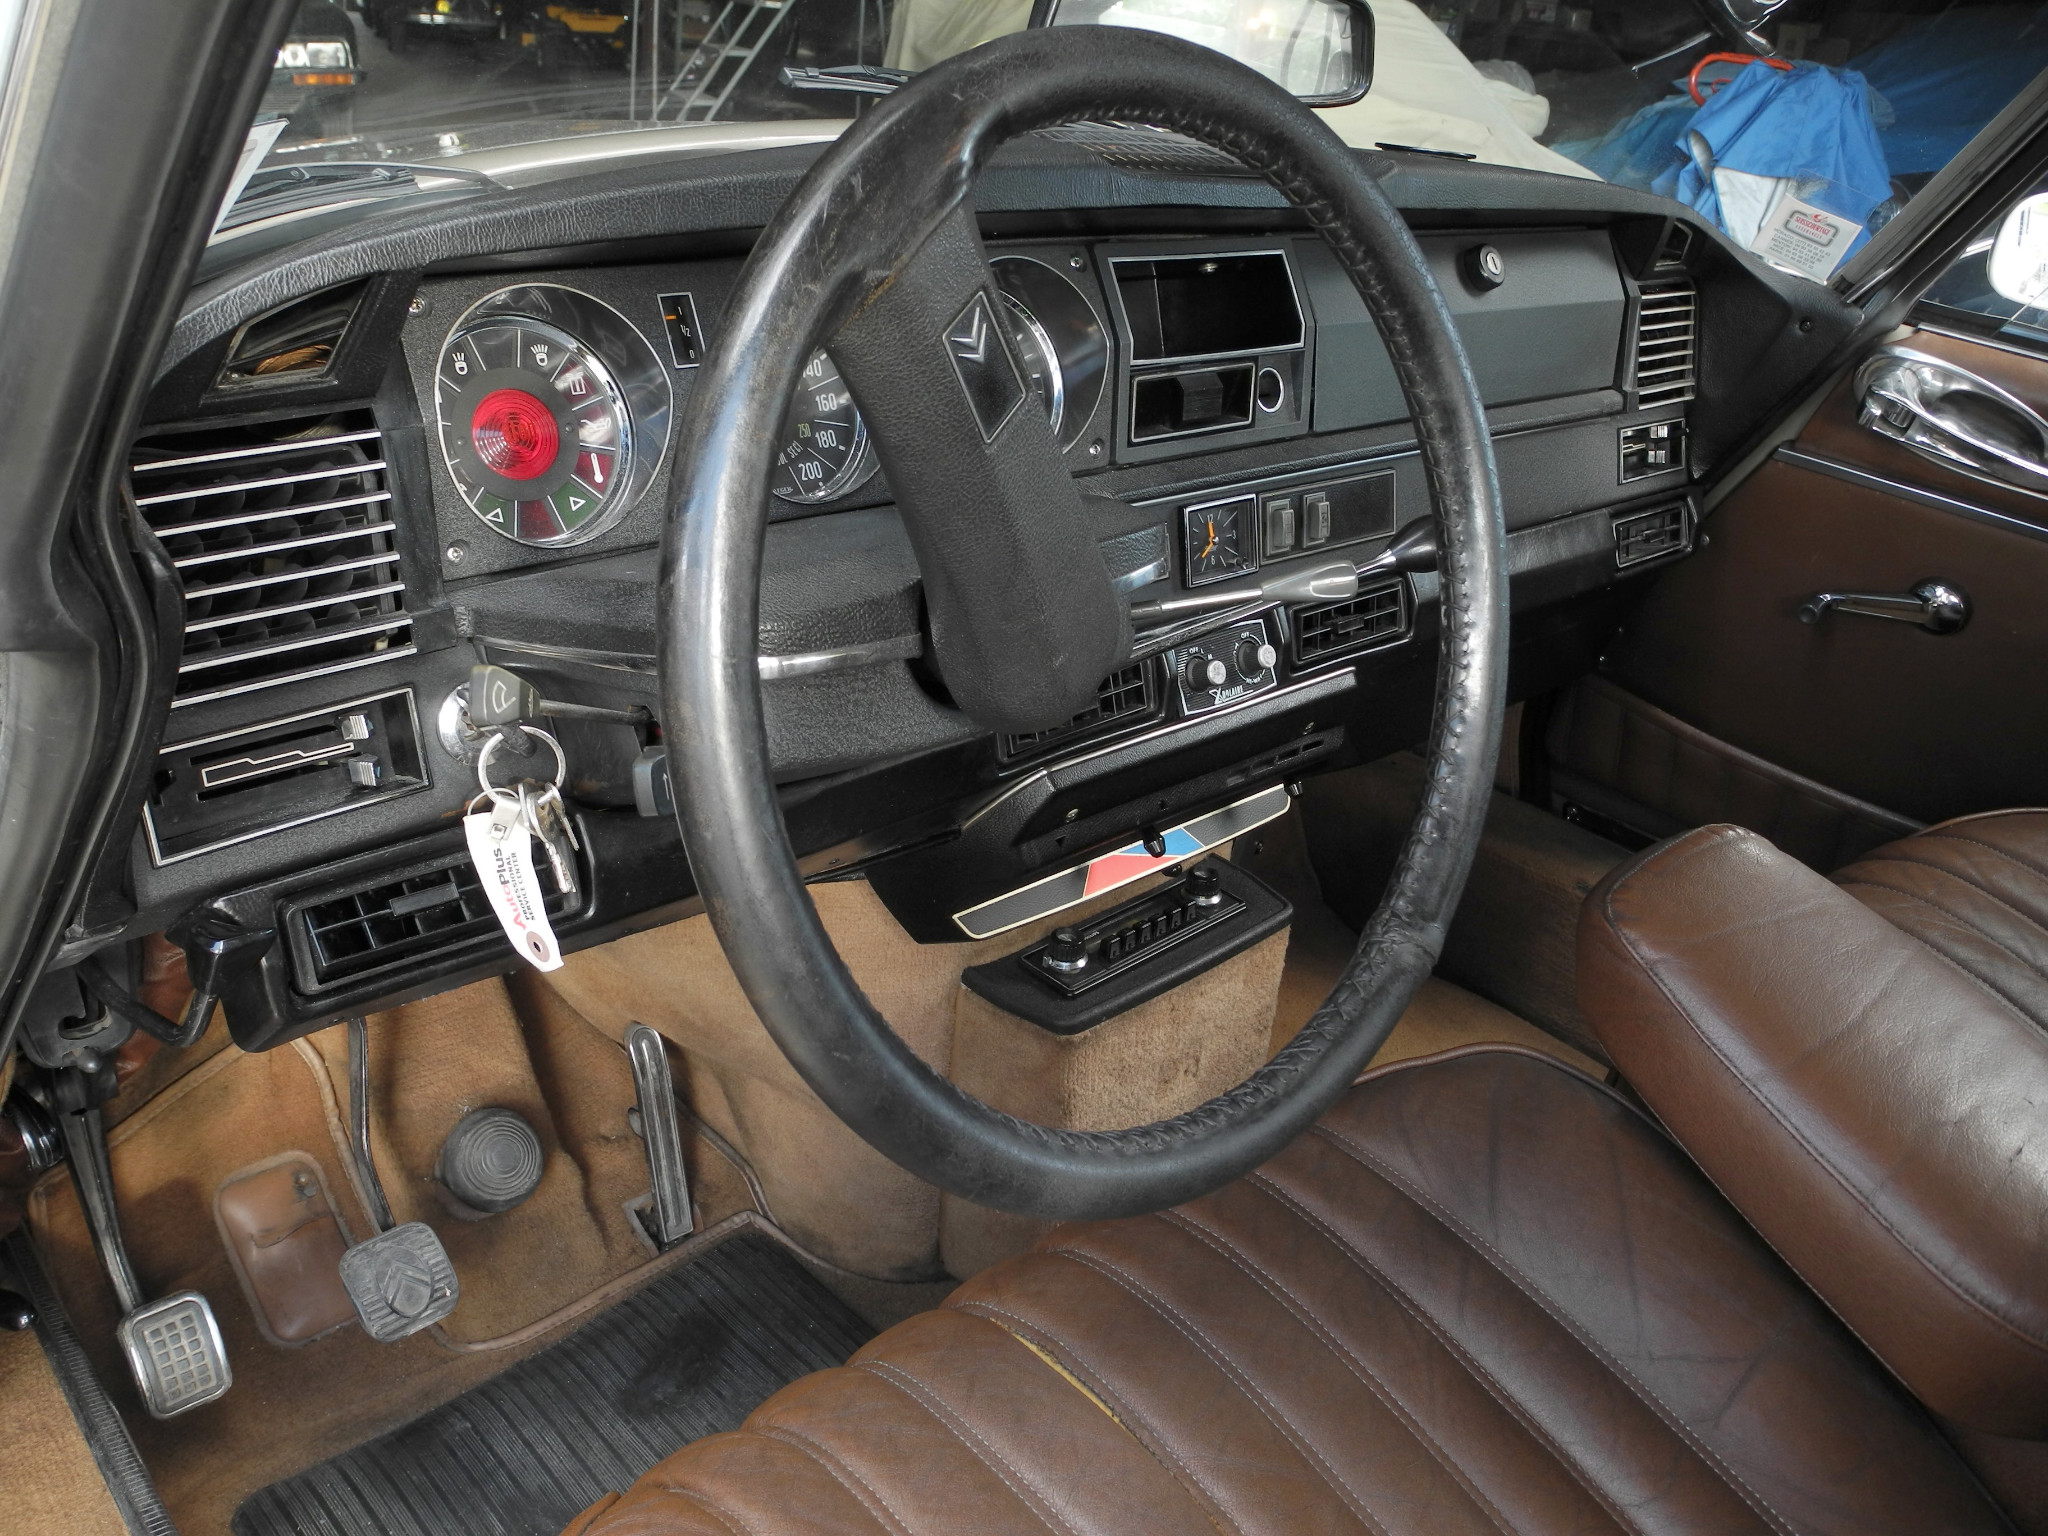 The Citroën DS interior was fully up to the space age styling of the rest of the car. The single spoke steering wheel was not only modern looking but practical, giving the driver an uninterrupted view of the instruments.